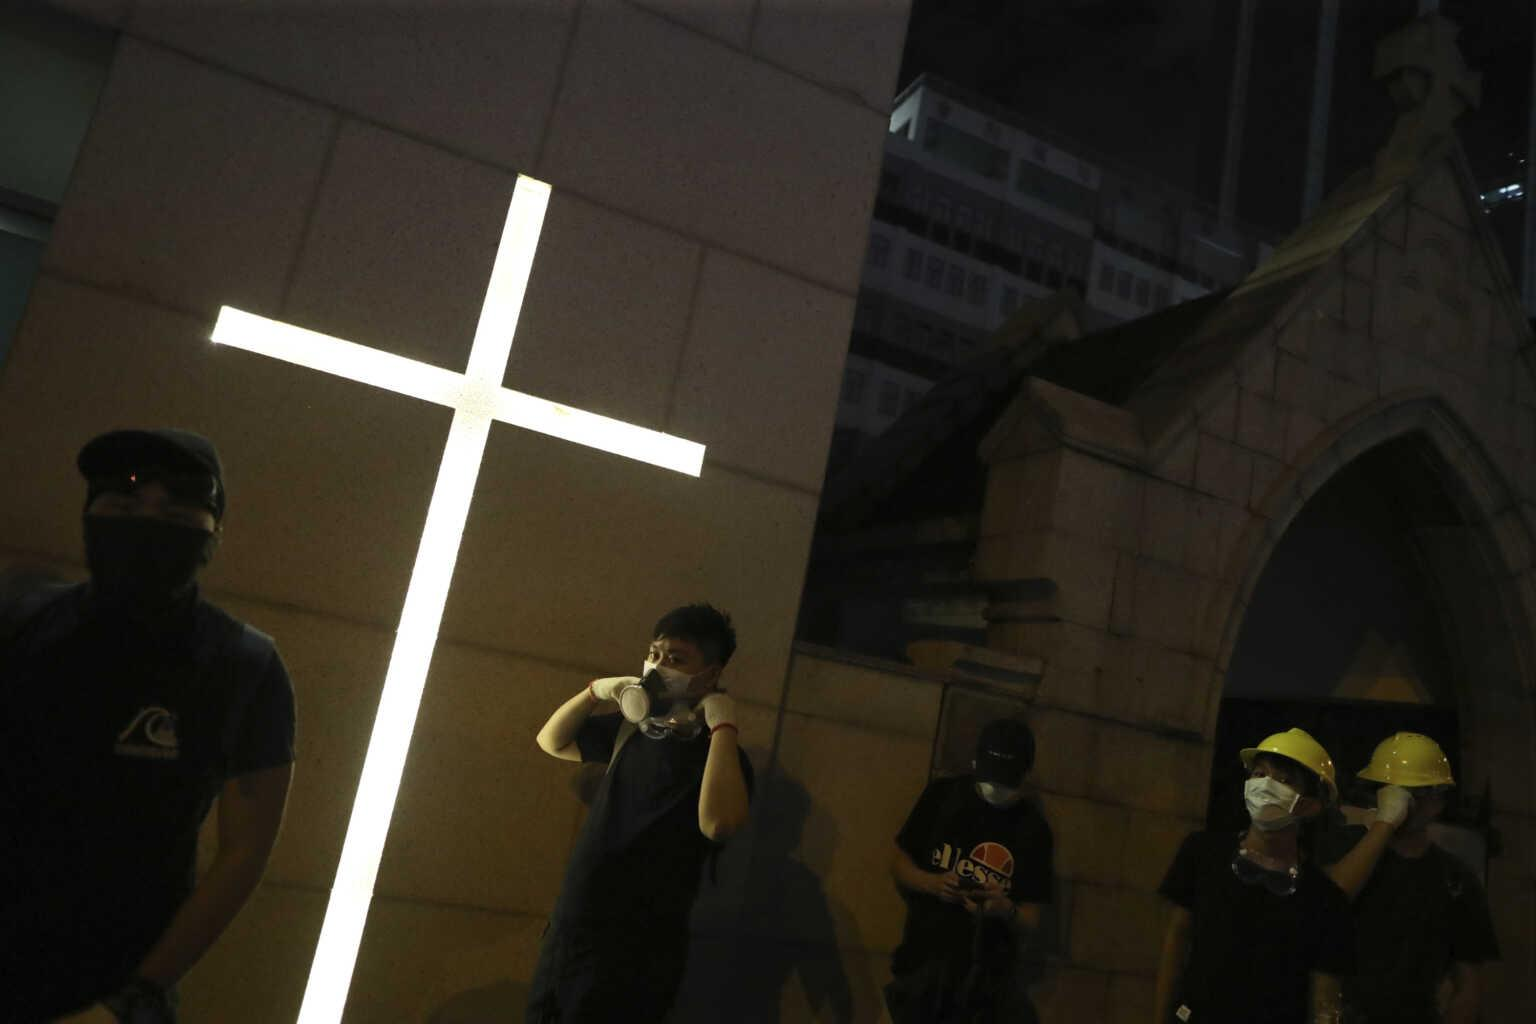 China Rips Crosses from Churches, Throws to the Ground Elderly Man Trying to Stop It